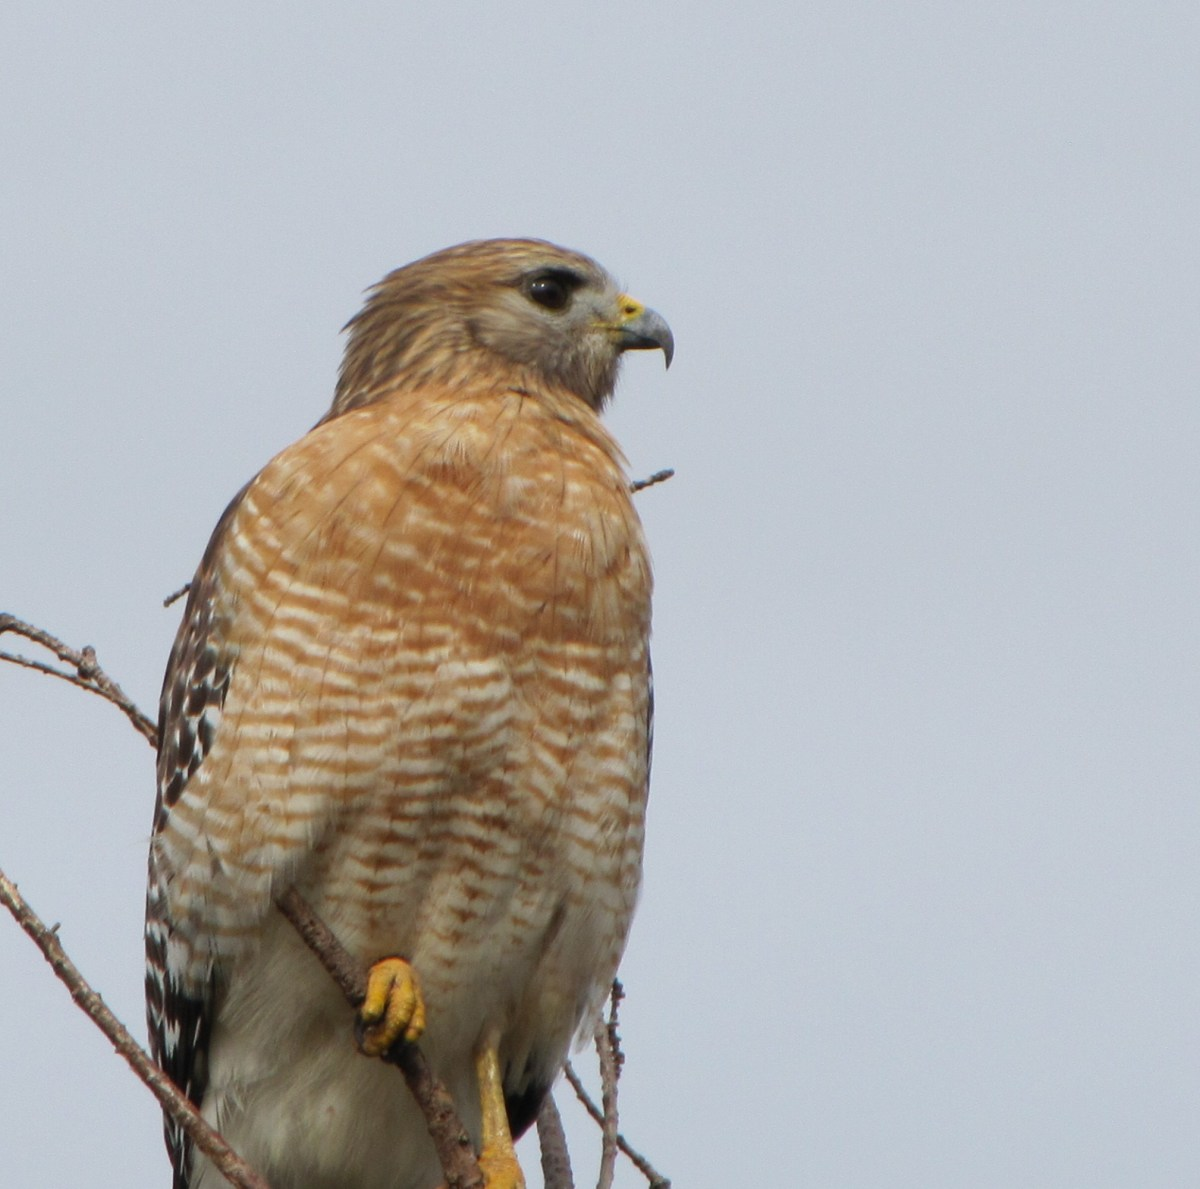 A red shouldered hawk in Florida.